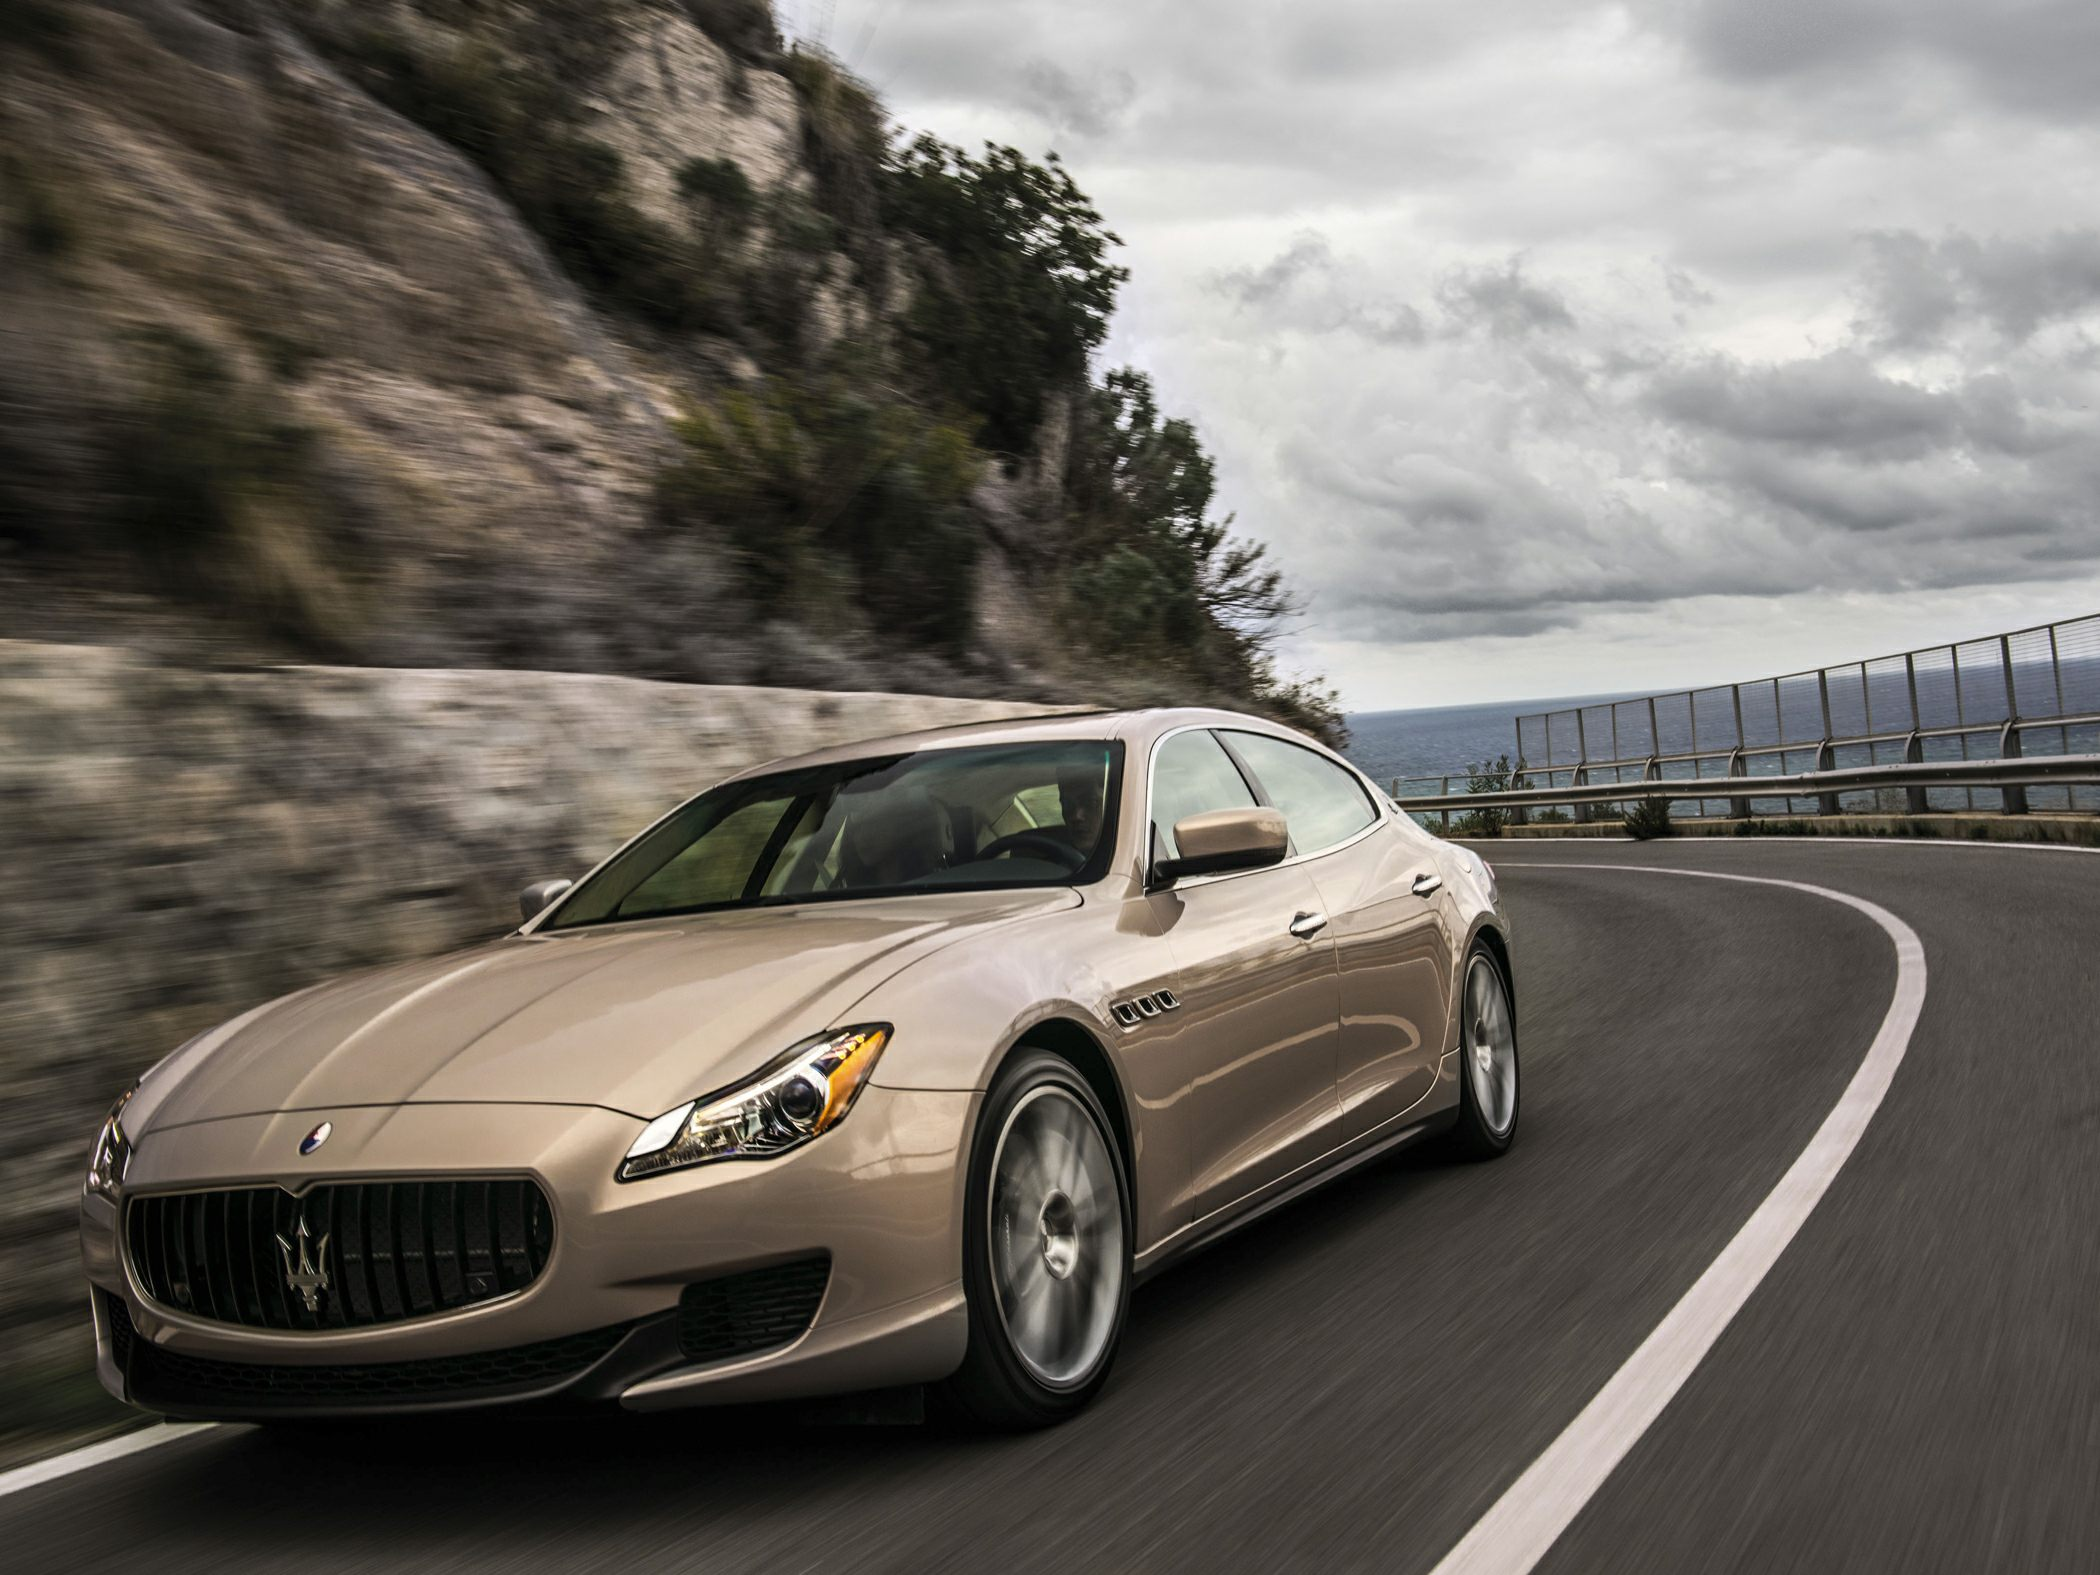 Maserati Quattroporte suits up with Ermenegildo Zegna [w/video]